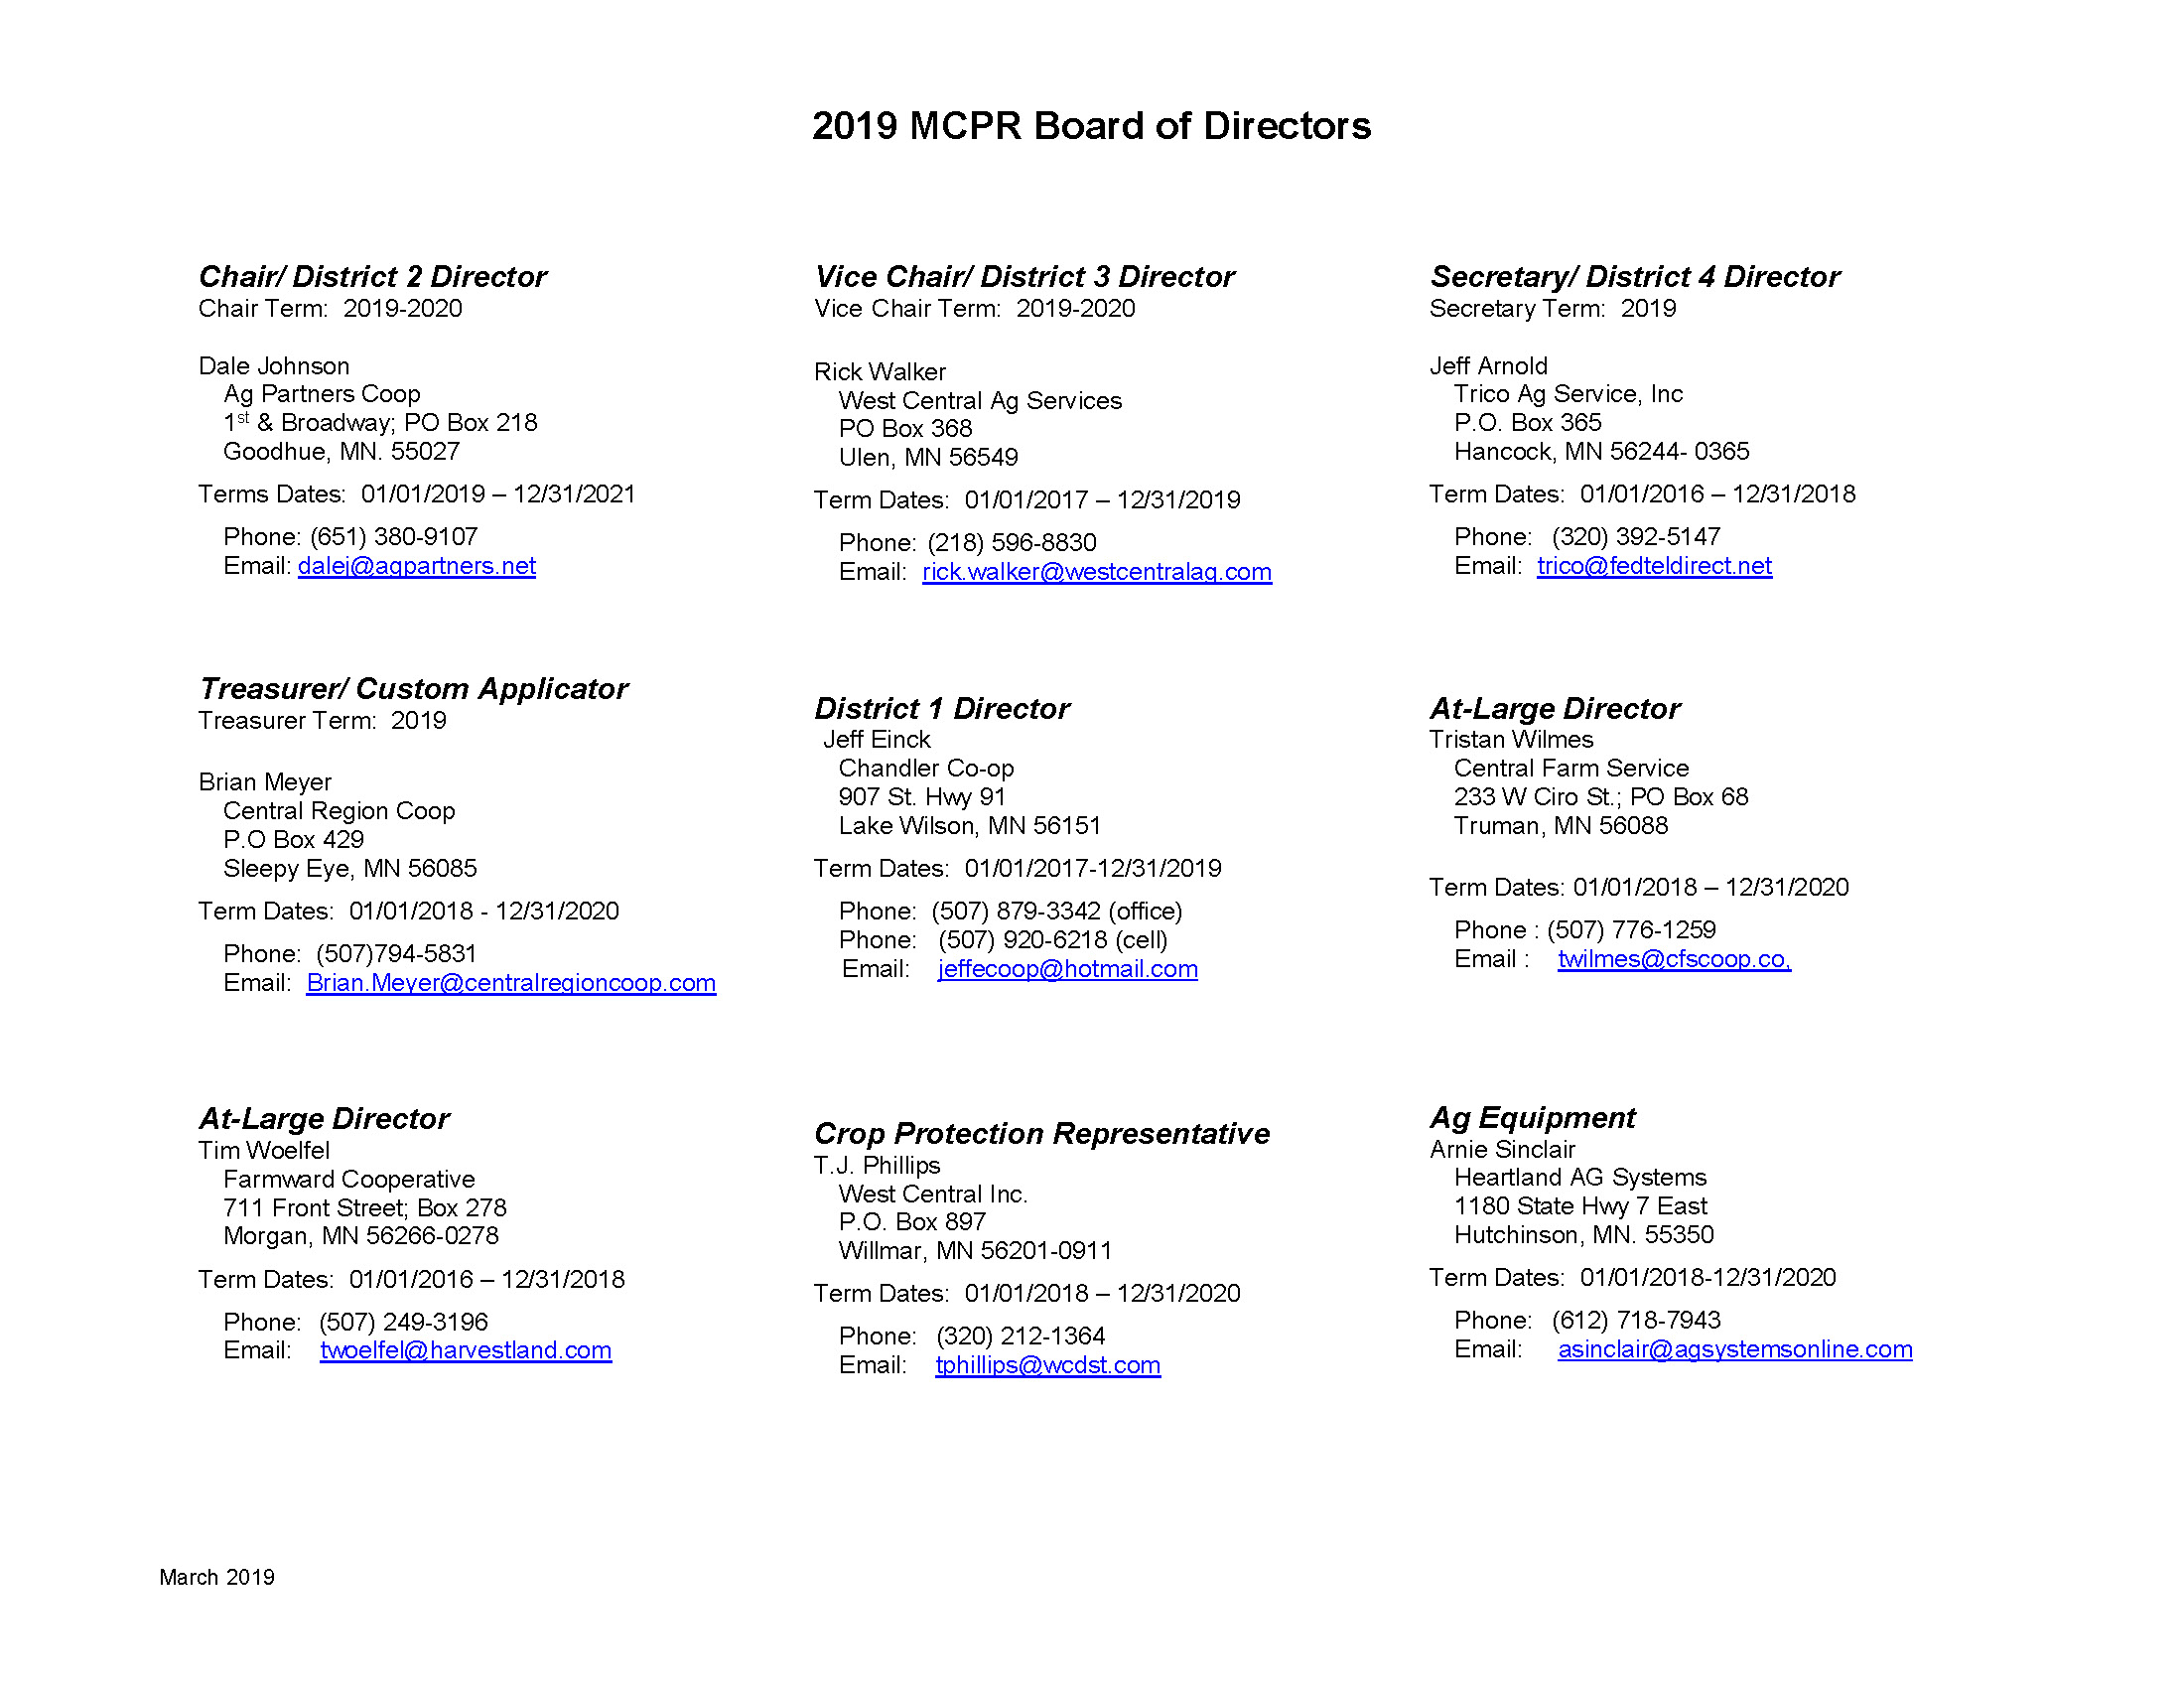 2019 MCPR Board of Directors_March2019_Page_1